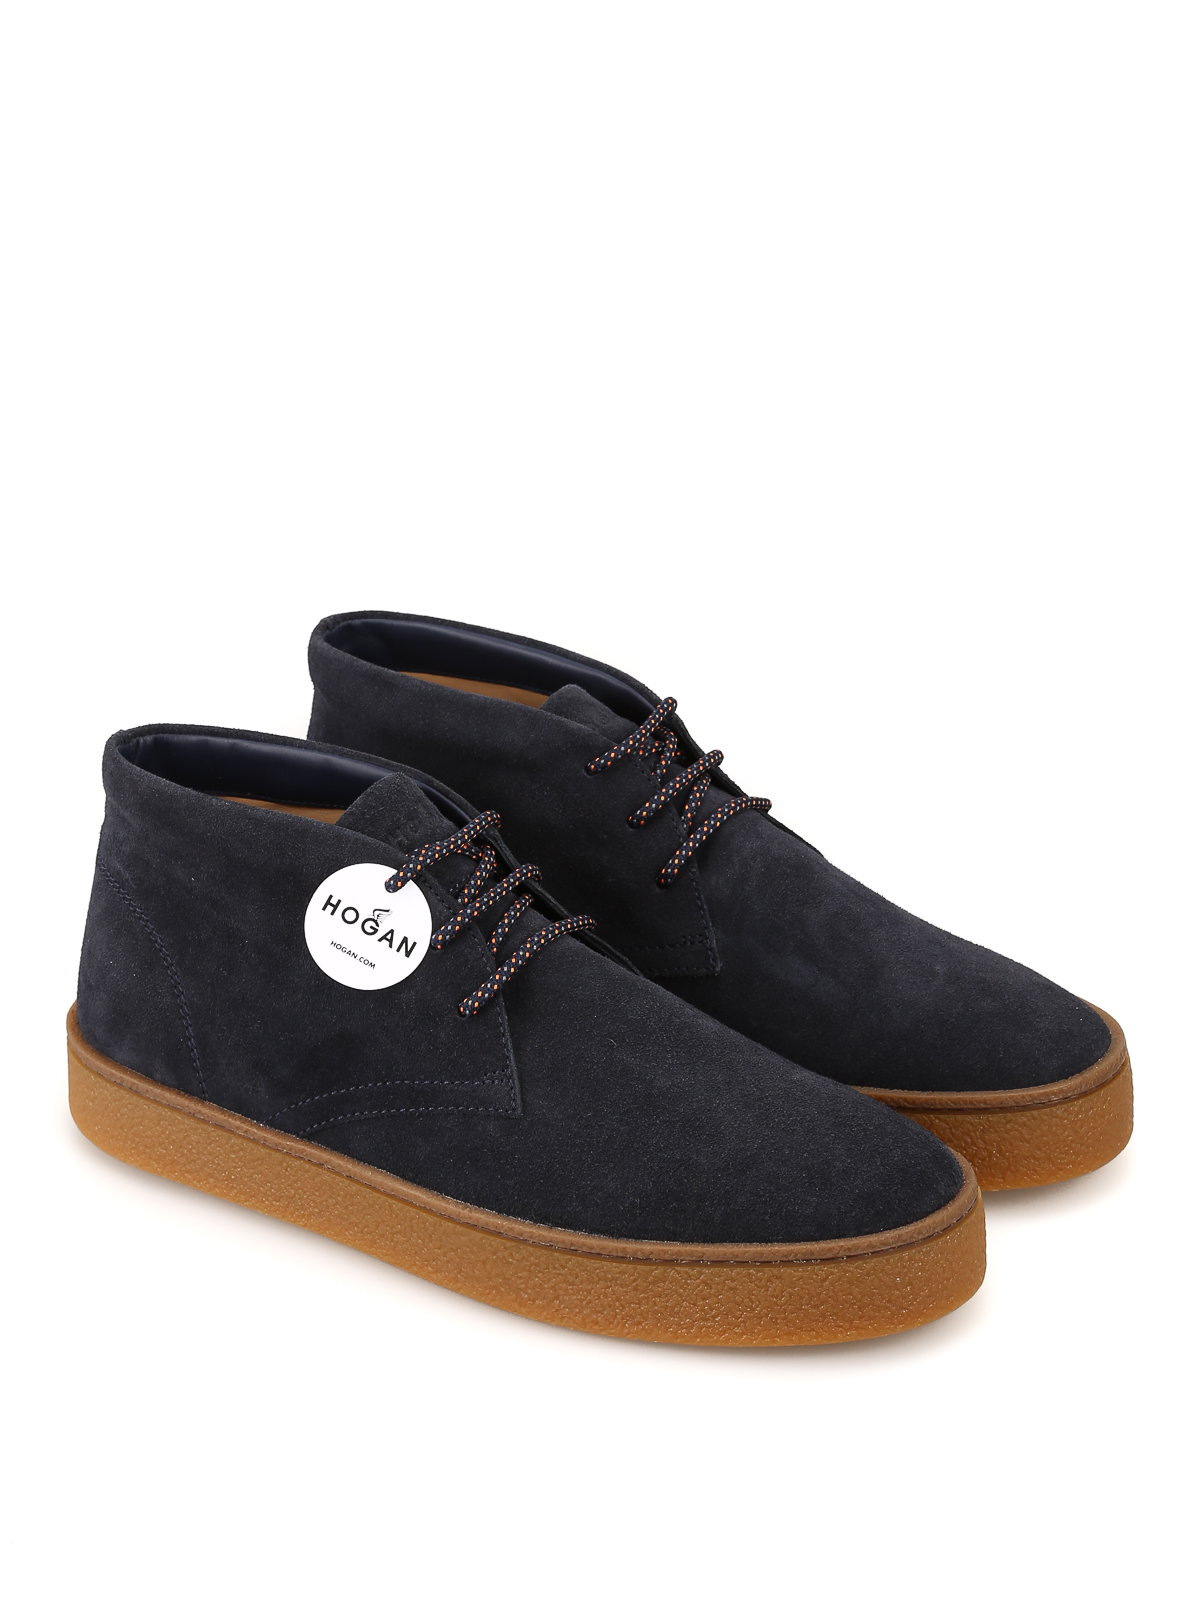 H476 Smart mid cut Derby lace-ups HOGAN | 12 | HXM4760CD40HG0U805